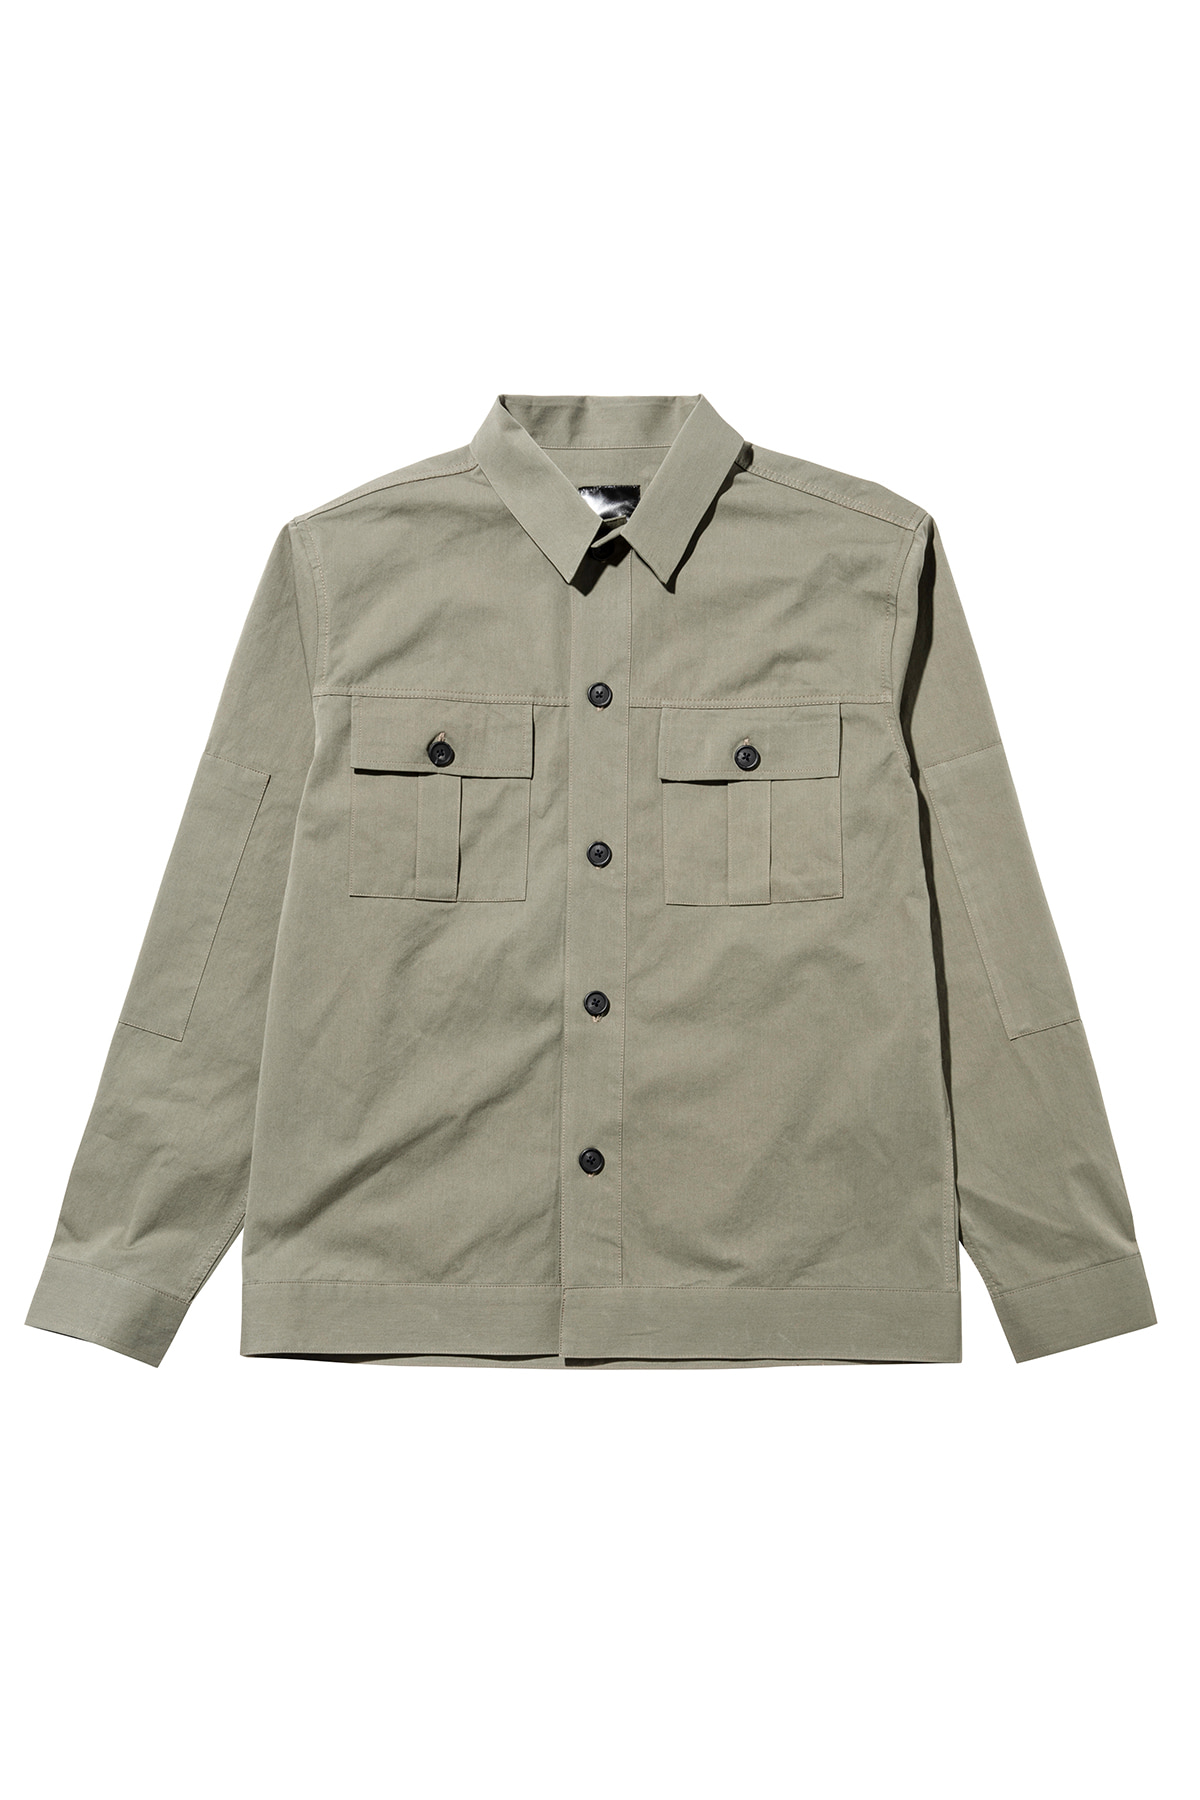 페이탈리즘 #jp37 Fatigue pocket shirt jacket (kakhi)